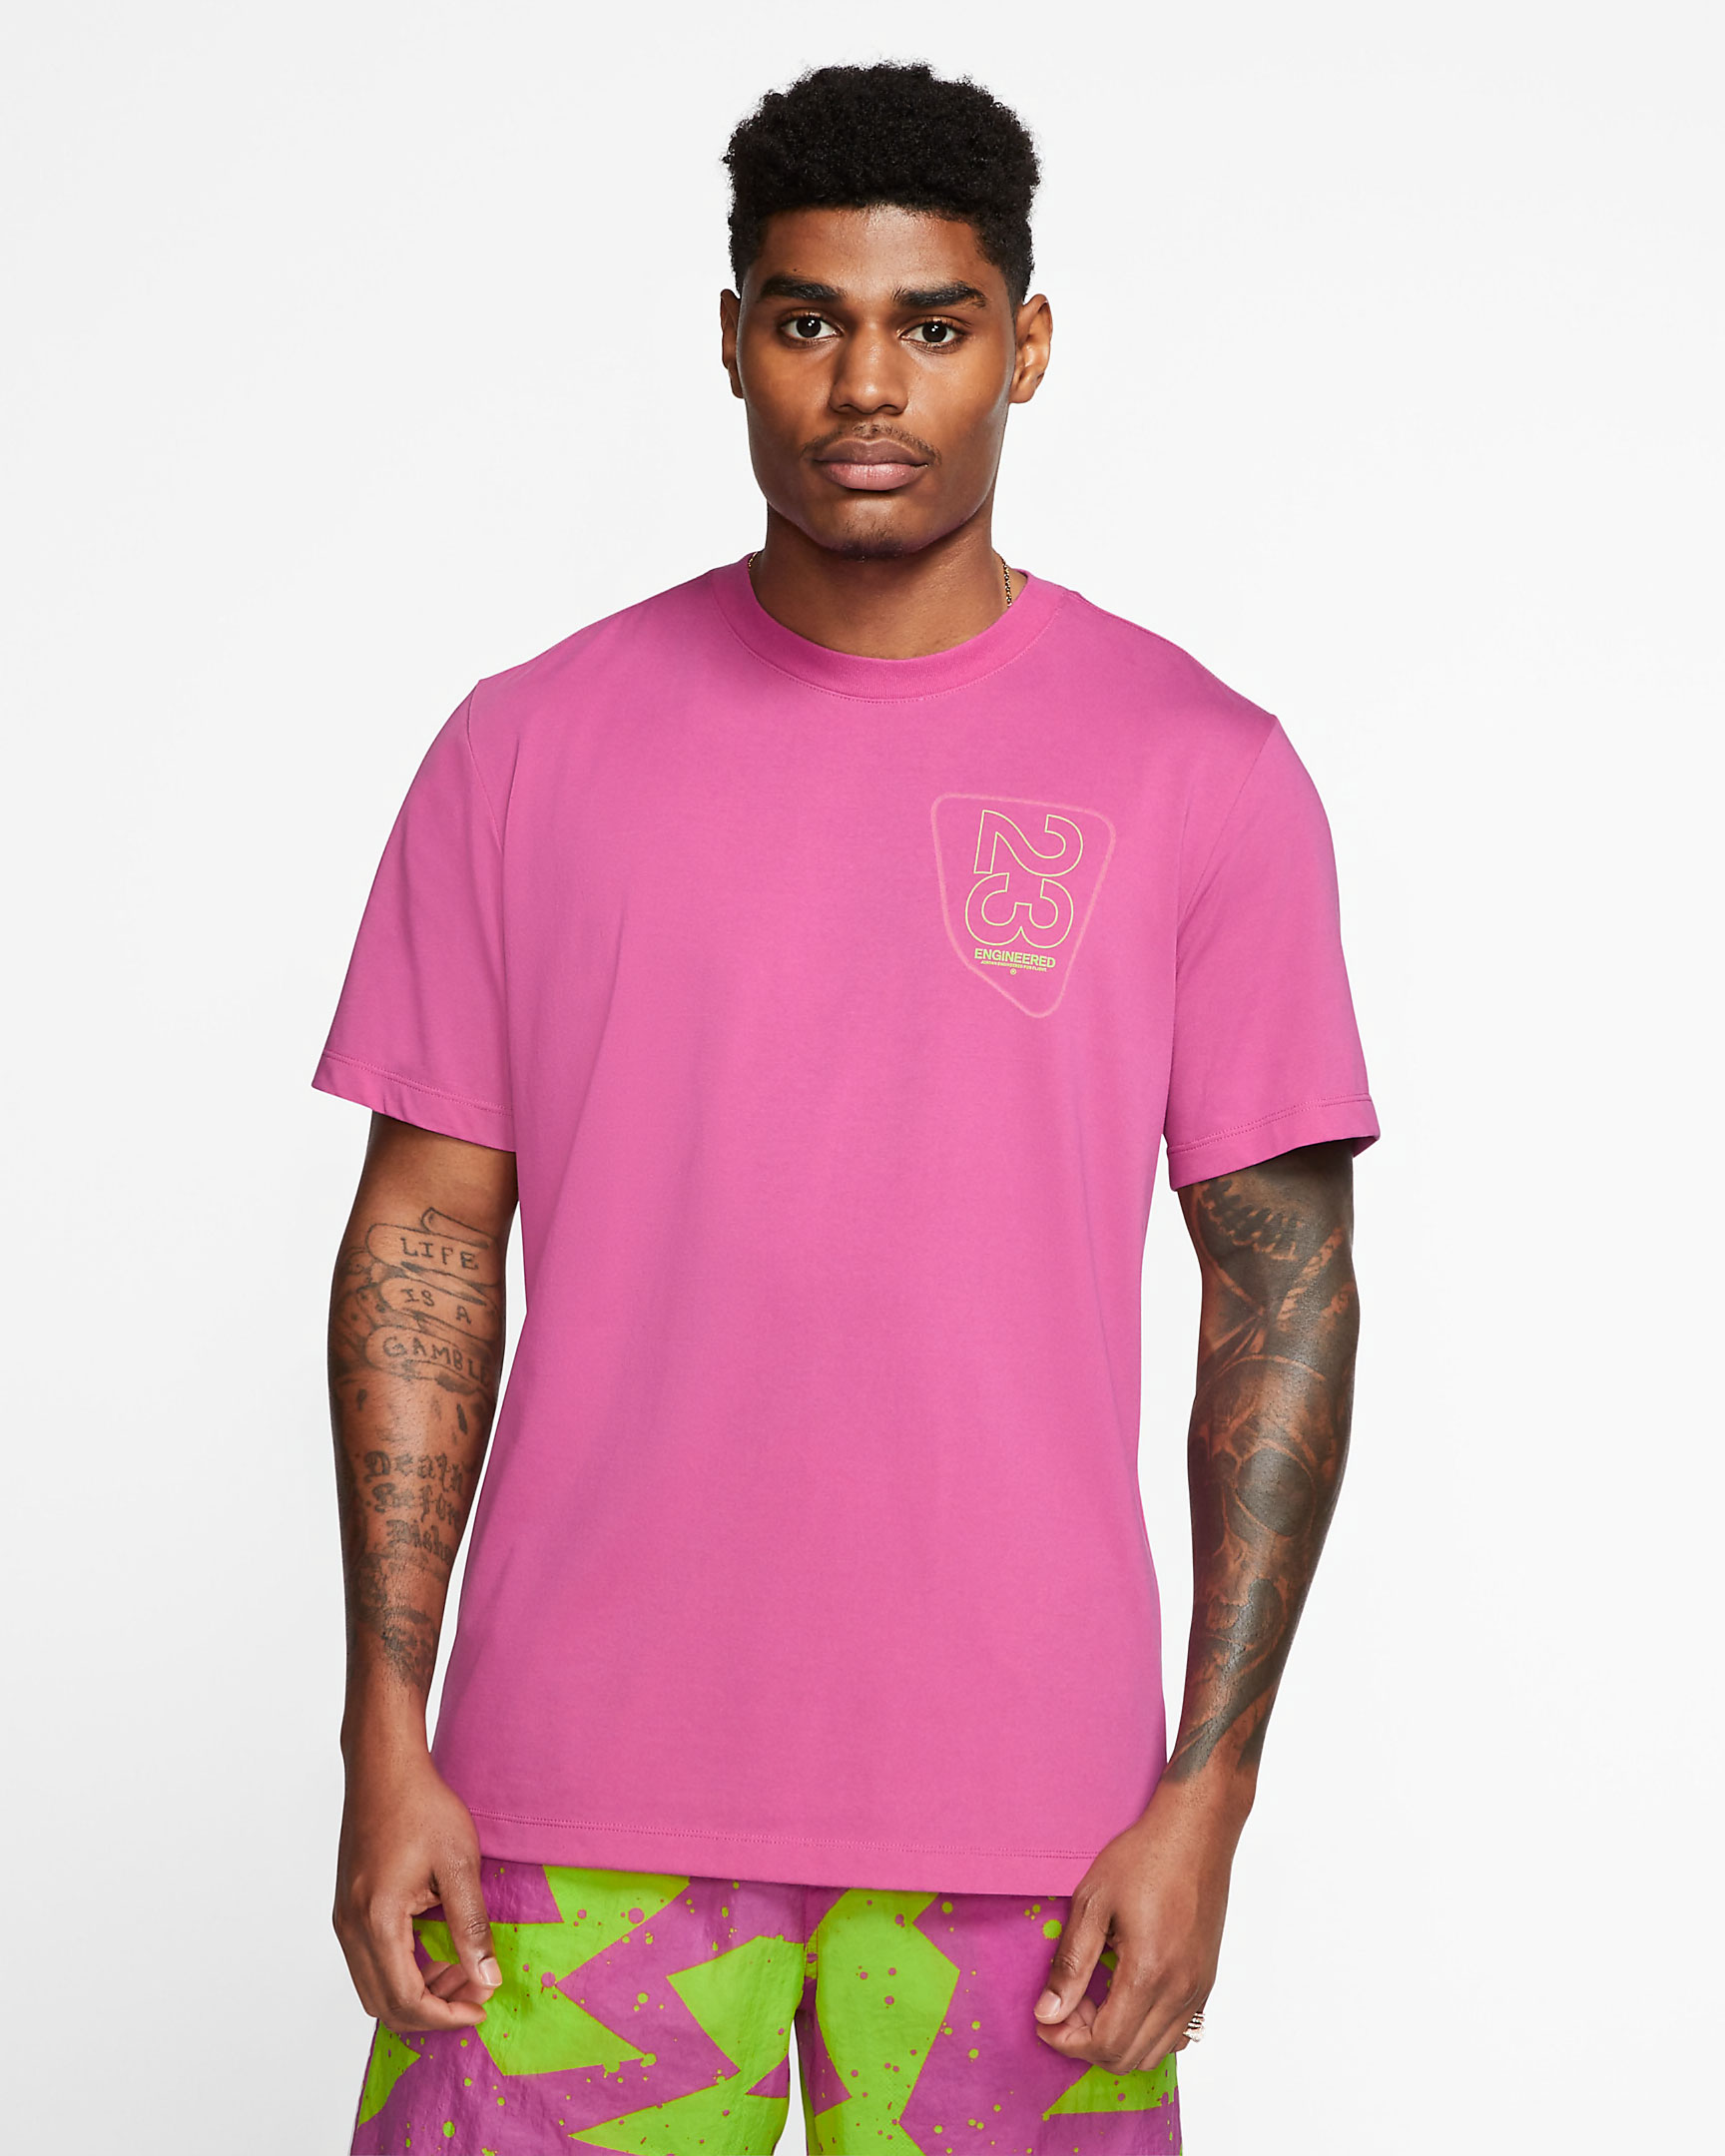 jordan-23-engineered-shirt-fuchsia-cyber